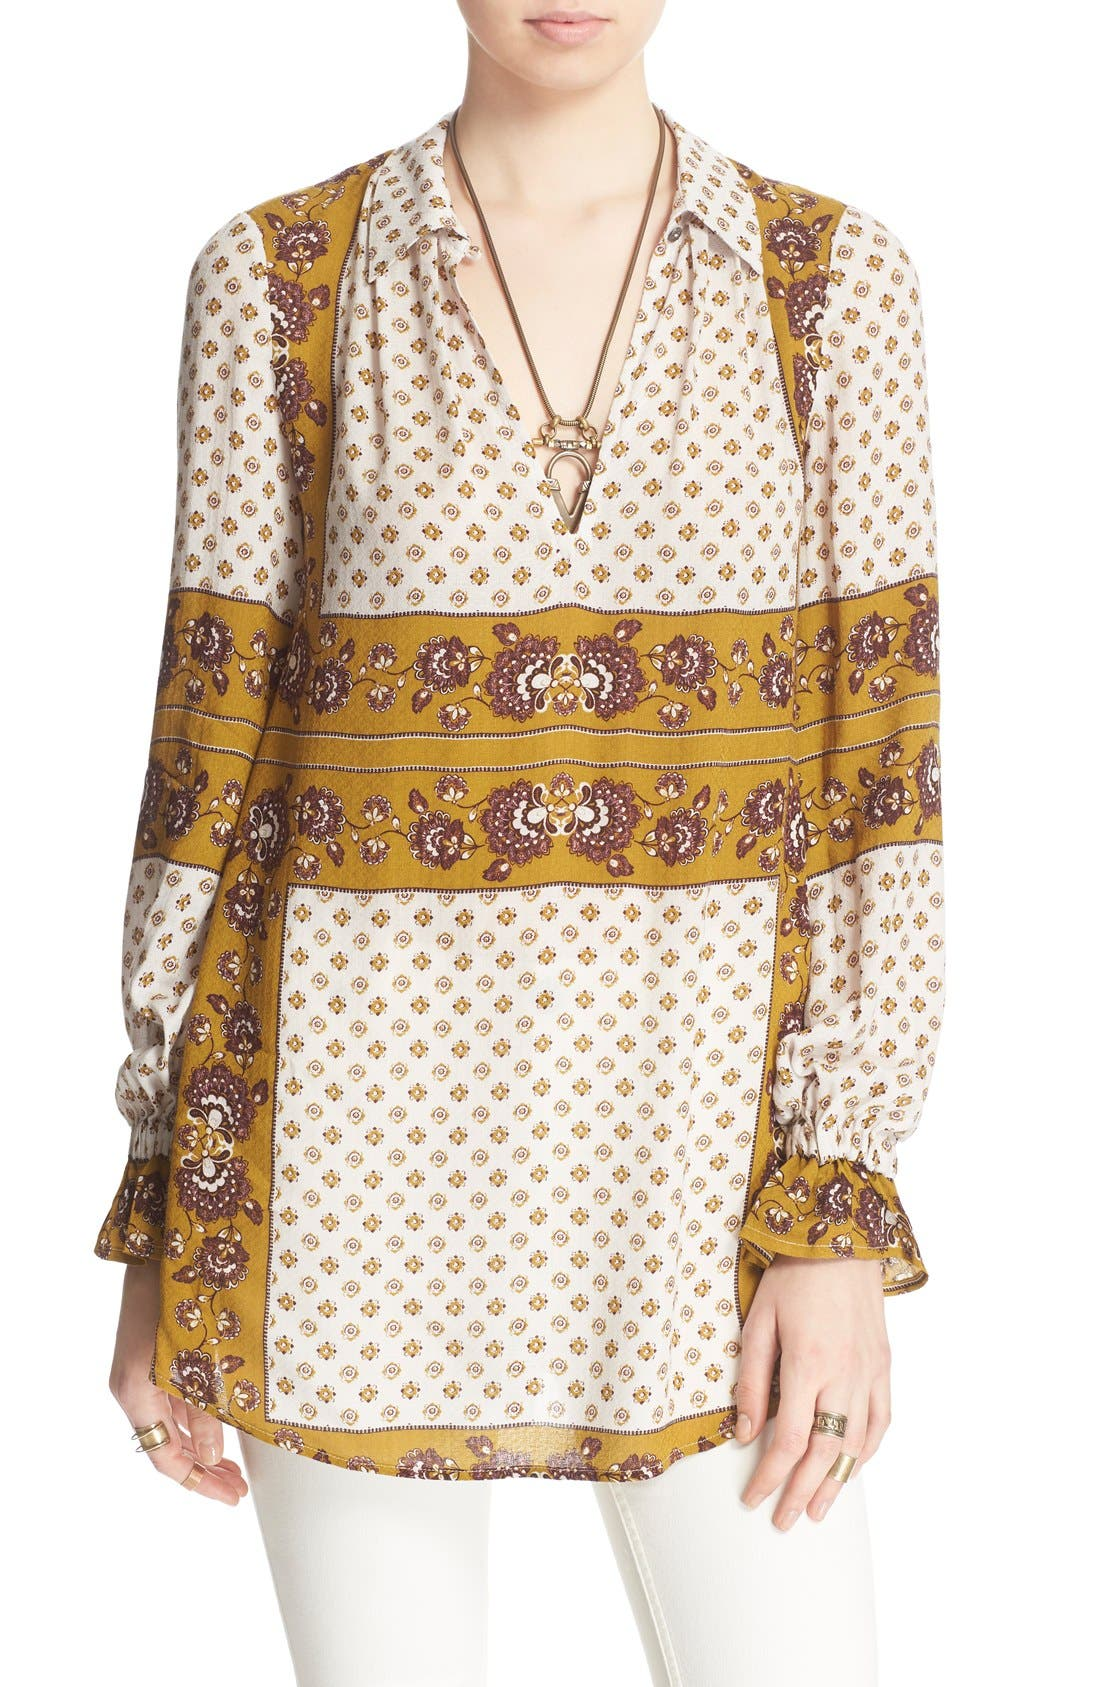 Alternate Image 1 Selected - Free People 'Changing Times' Floral Print Tunic